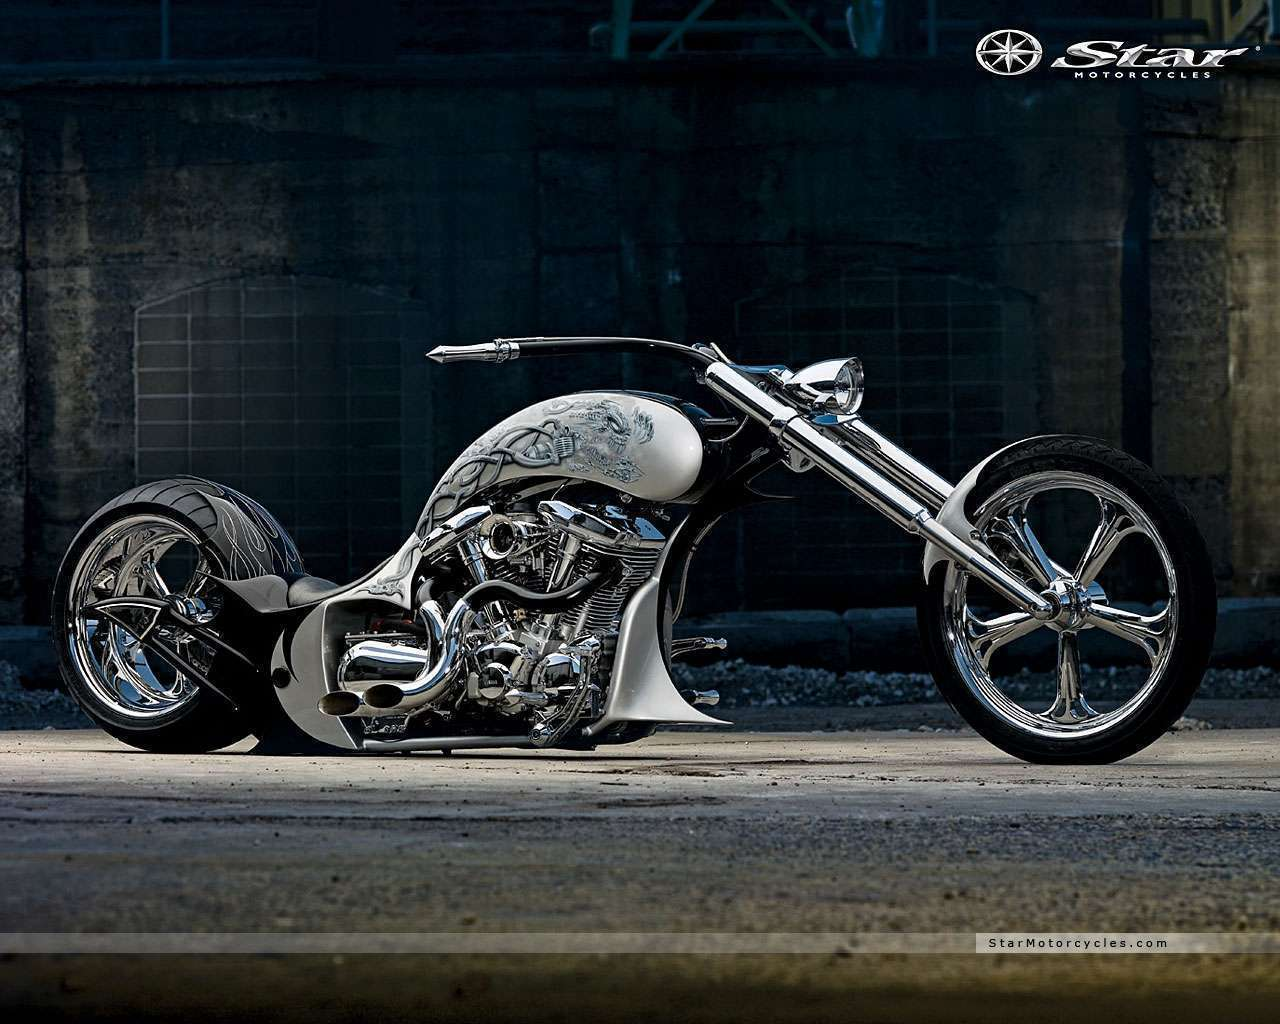 Cool Custom Bike Wallpaper : Hd Car Wallpapers